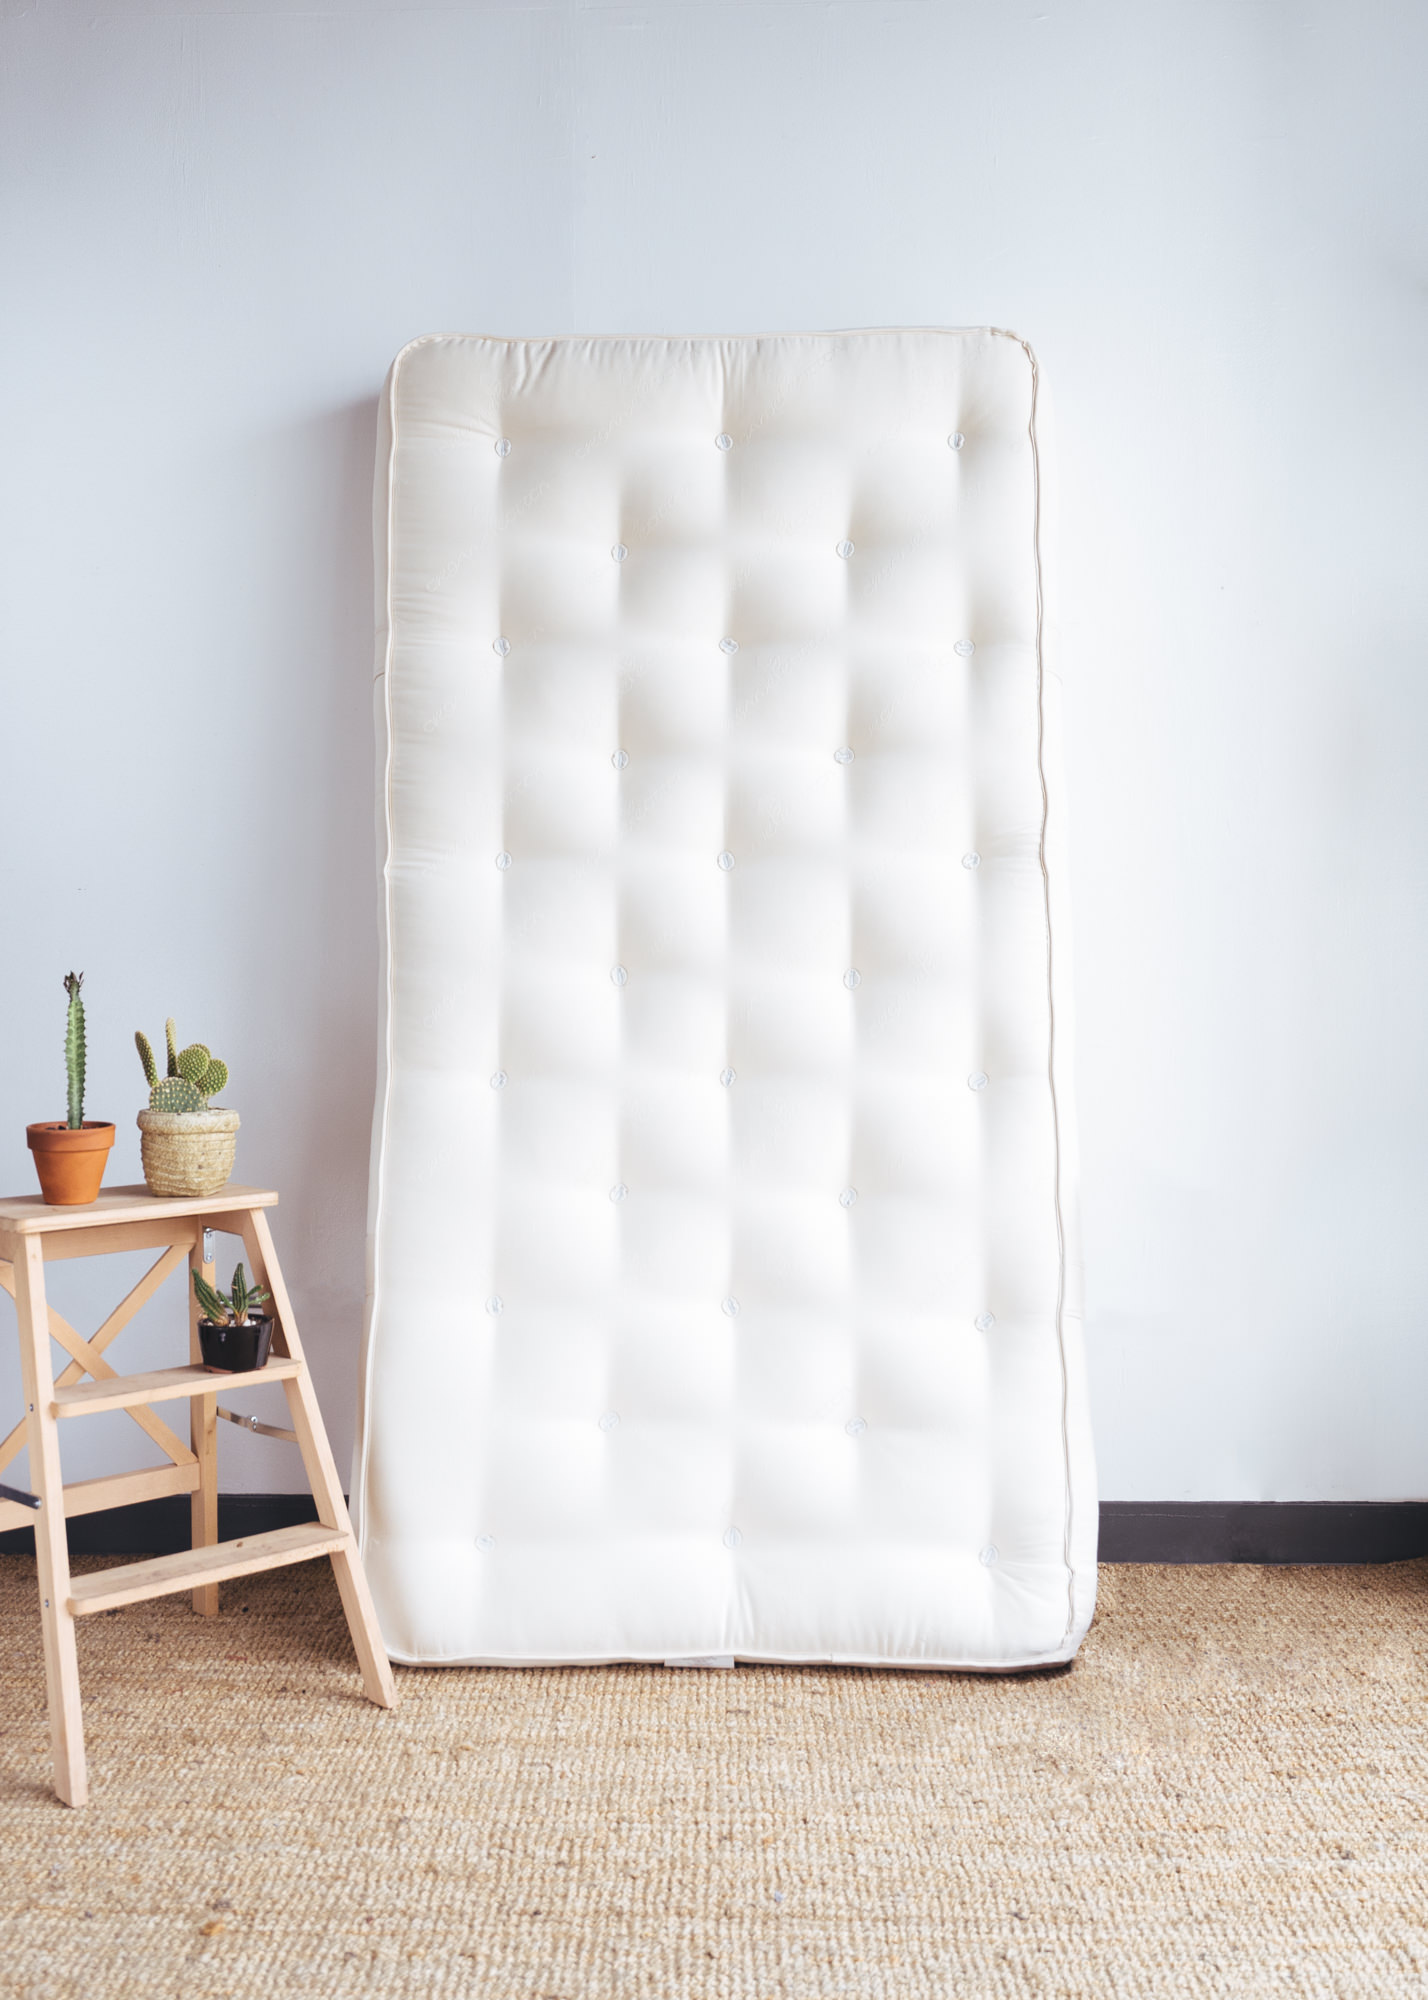 Pure Bliss  NonToxic Mattress for Kids  SleepLily